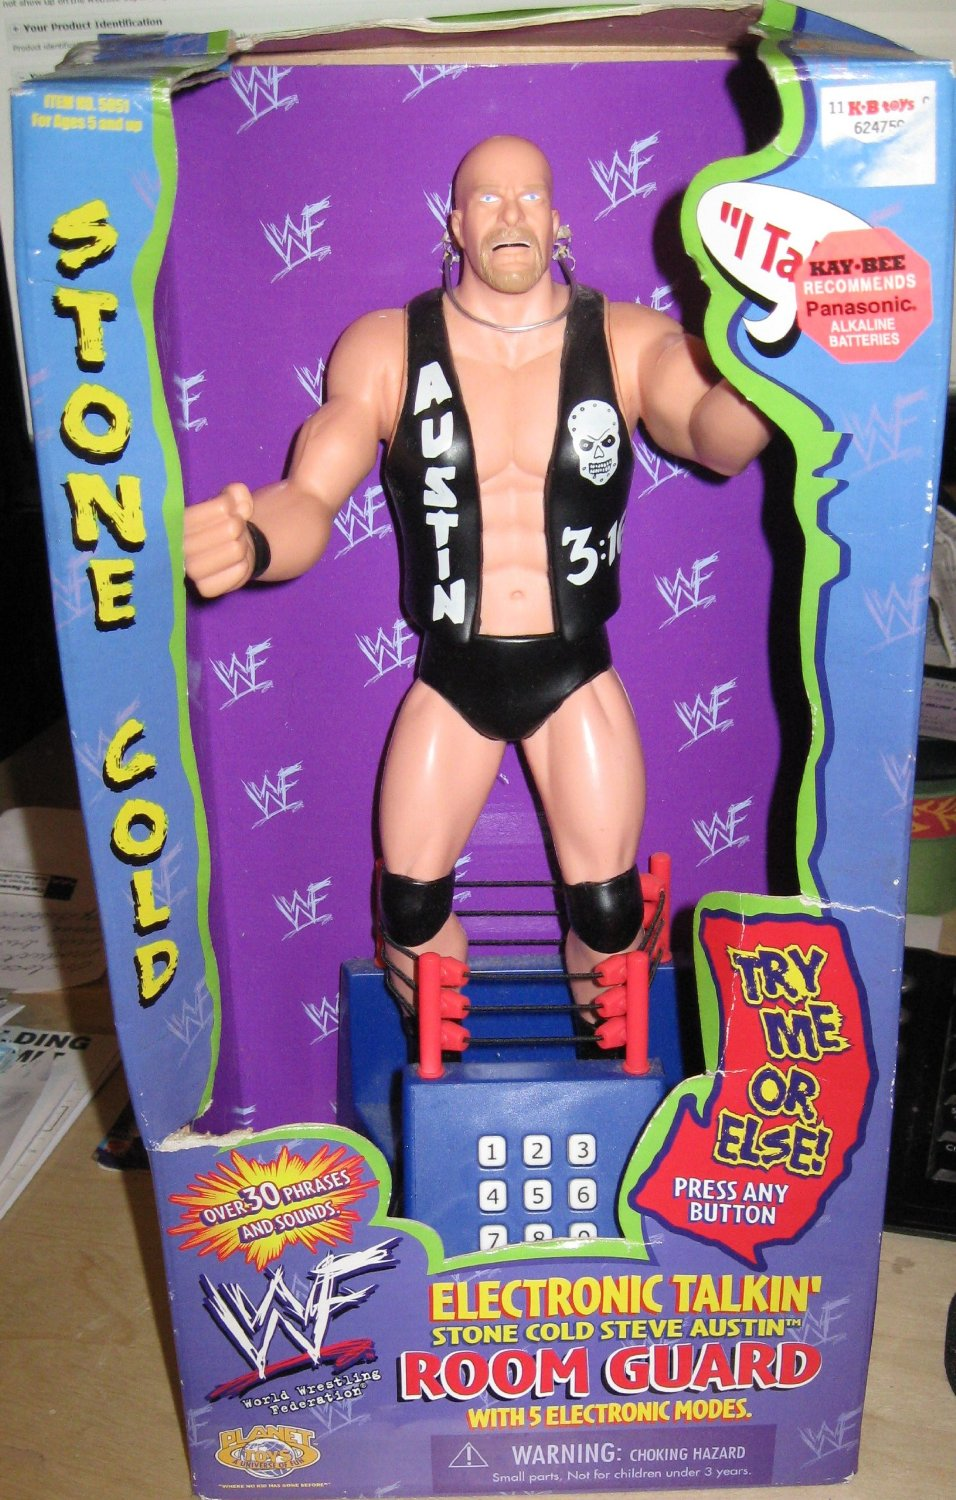 Stone Cold Steve Austin Room Guard alarm